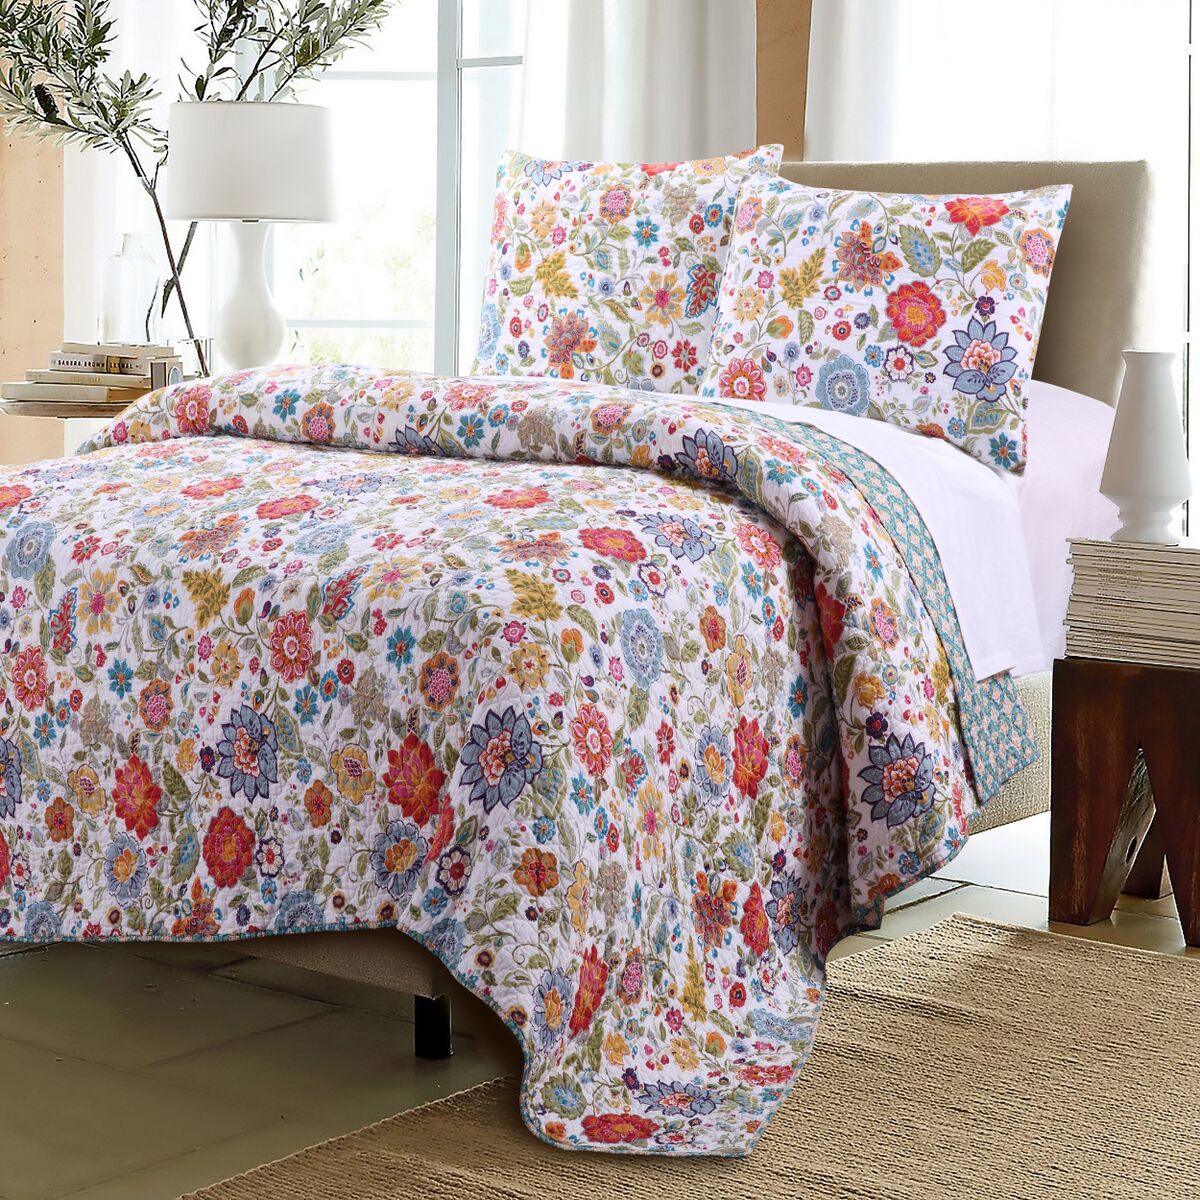 Astoria By Greenland Home Fashions Beddingsuperstore Com